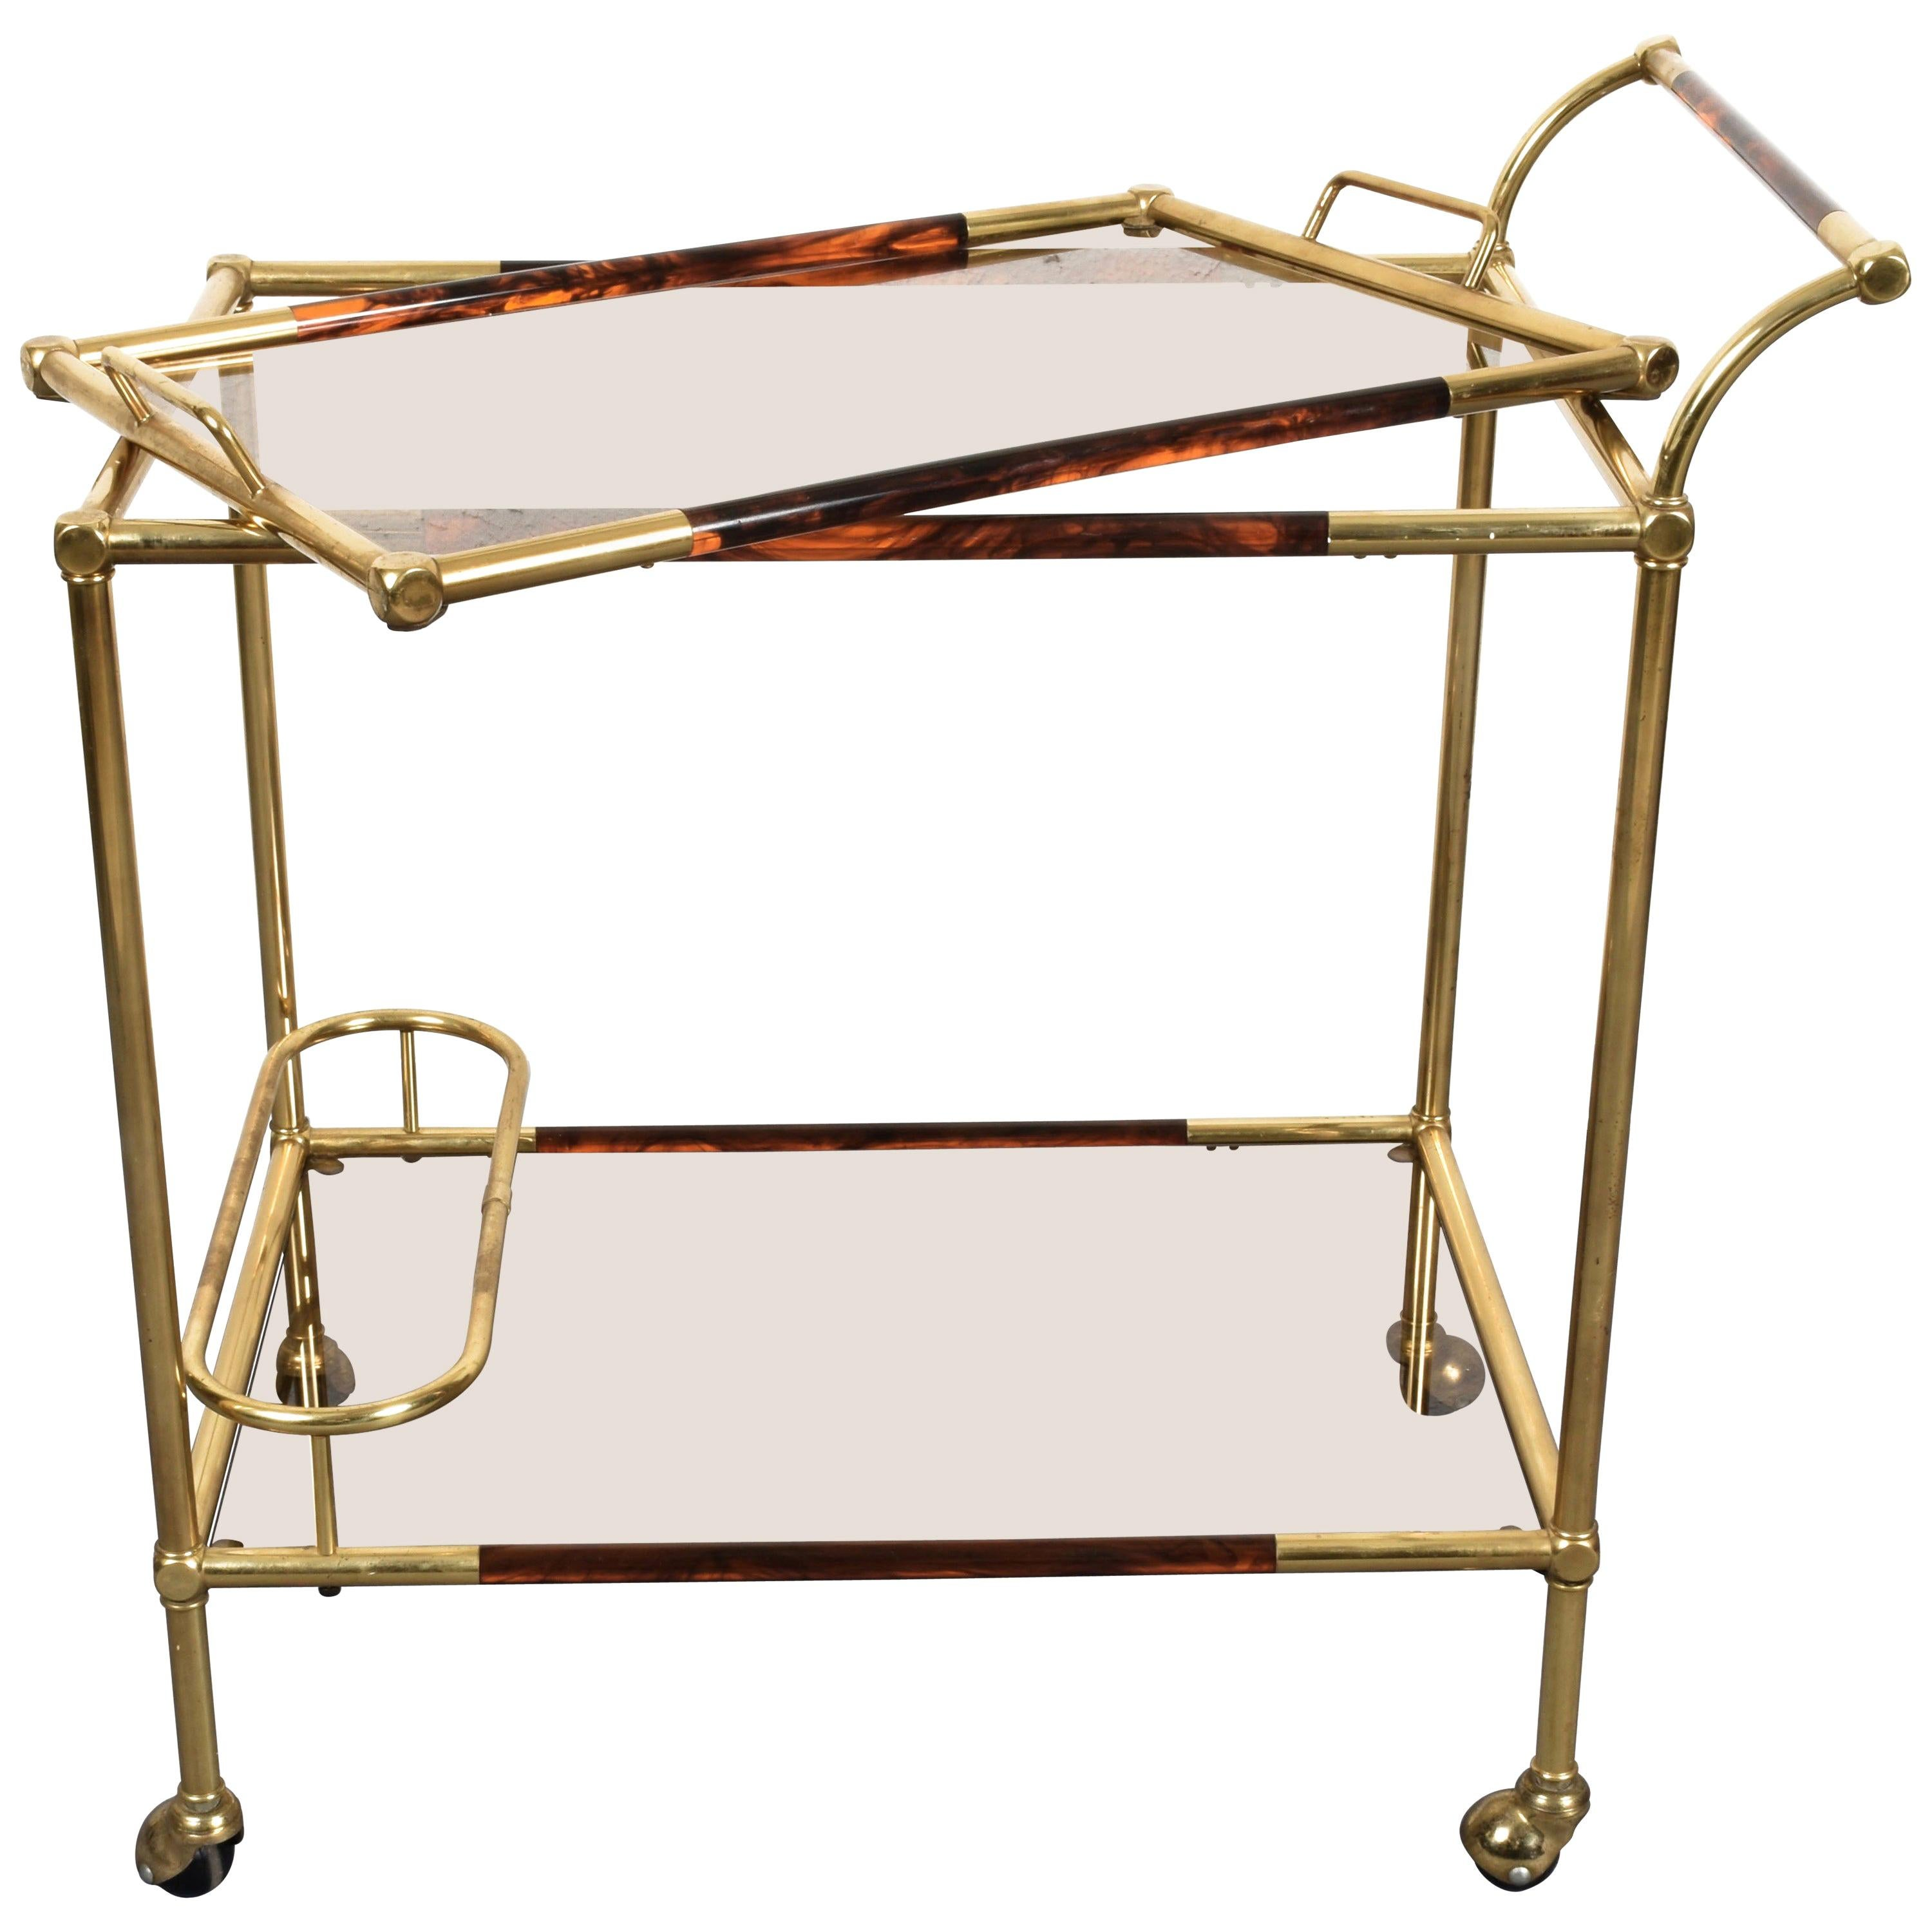 Willy Rizzo Brass and Lucite Tortoise Italian Trolley with Service Tray, 1980s